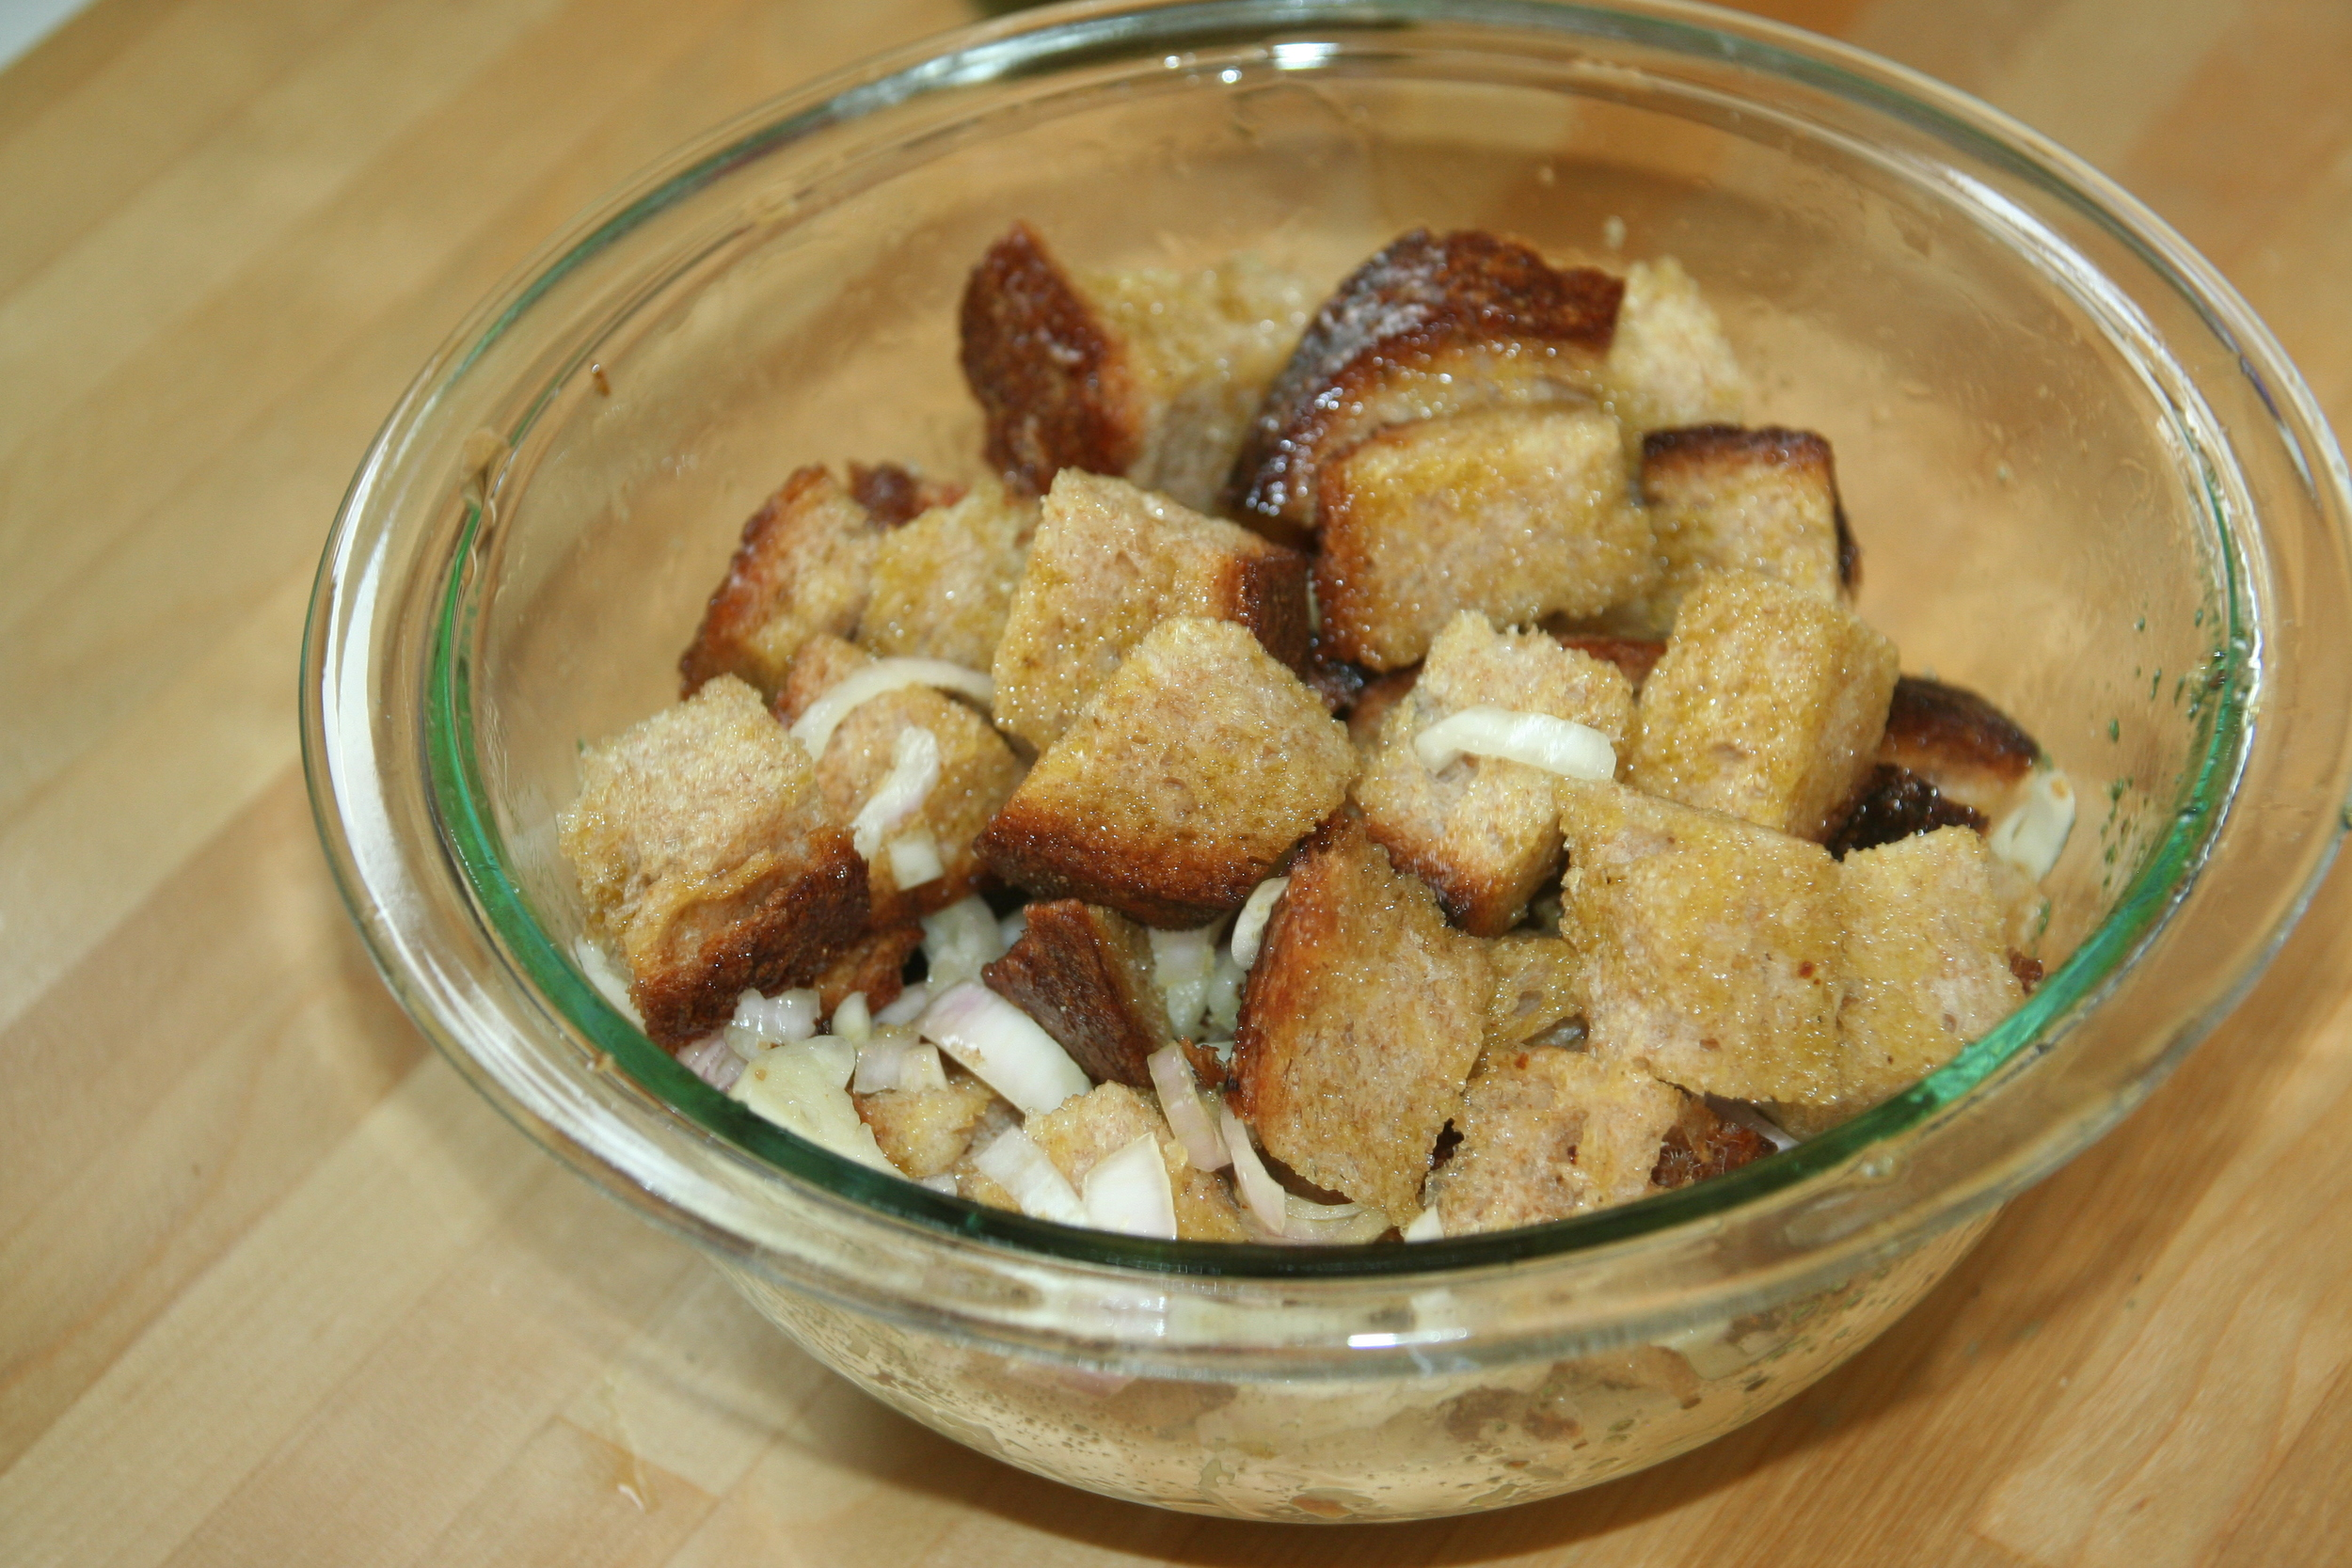 Next, I drizzled the bread with my favorite Frankies 457 olive oil and tossed with a sliced shallot.